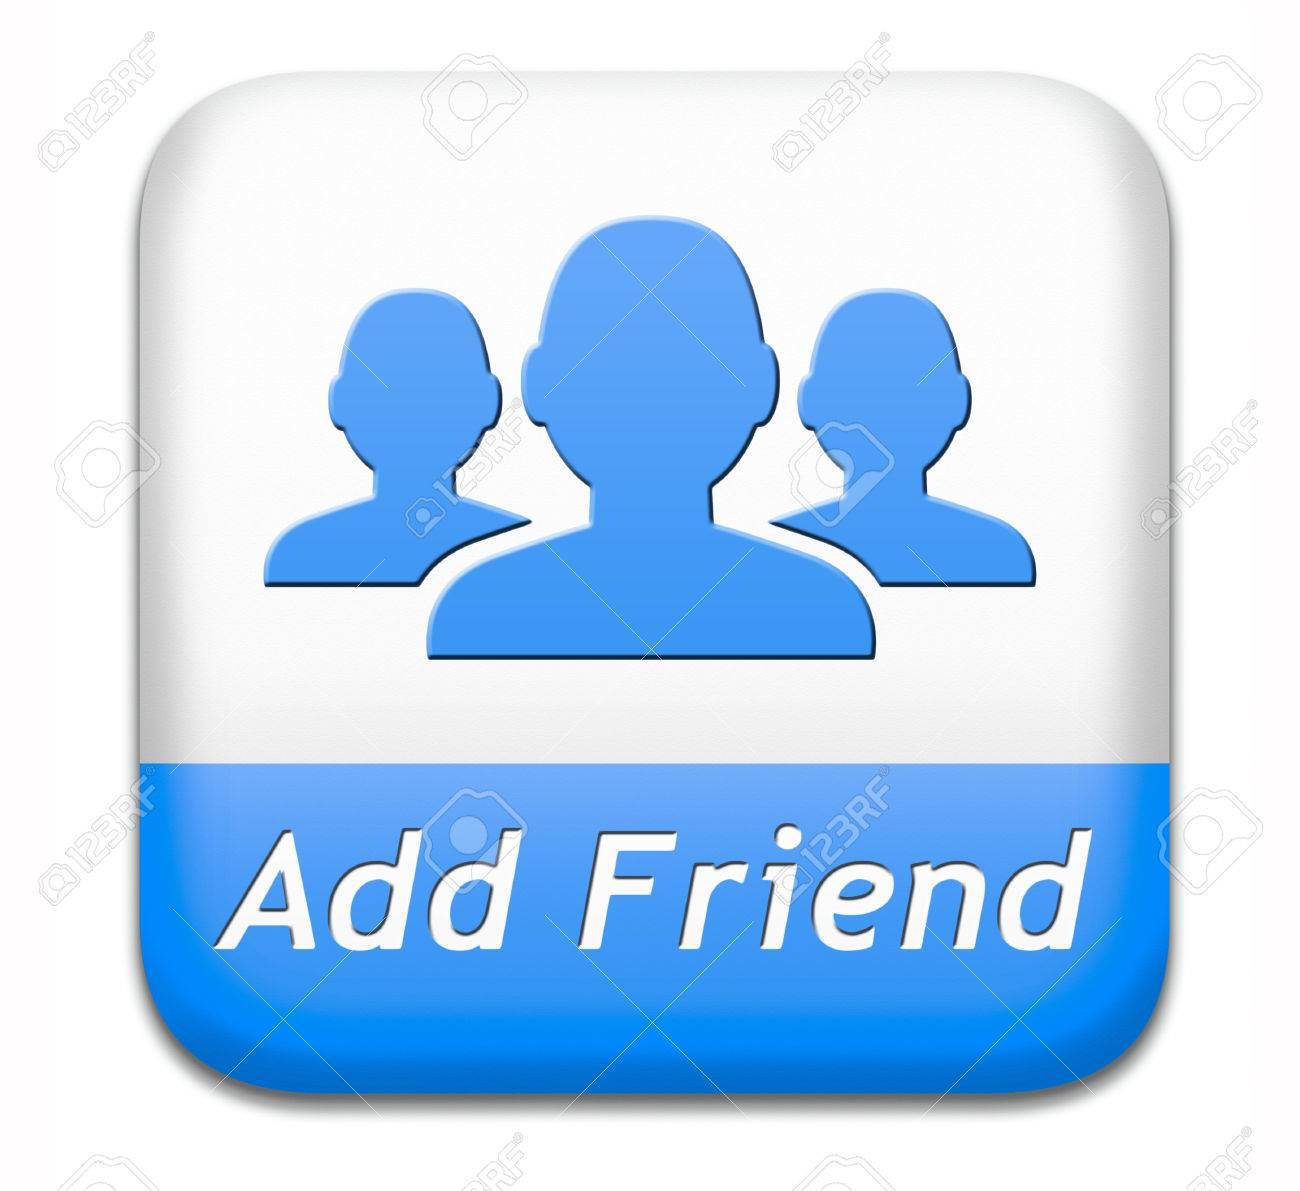 Add friend by UID